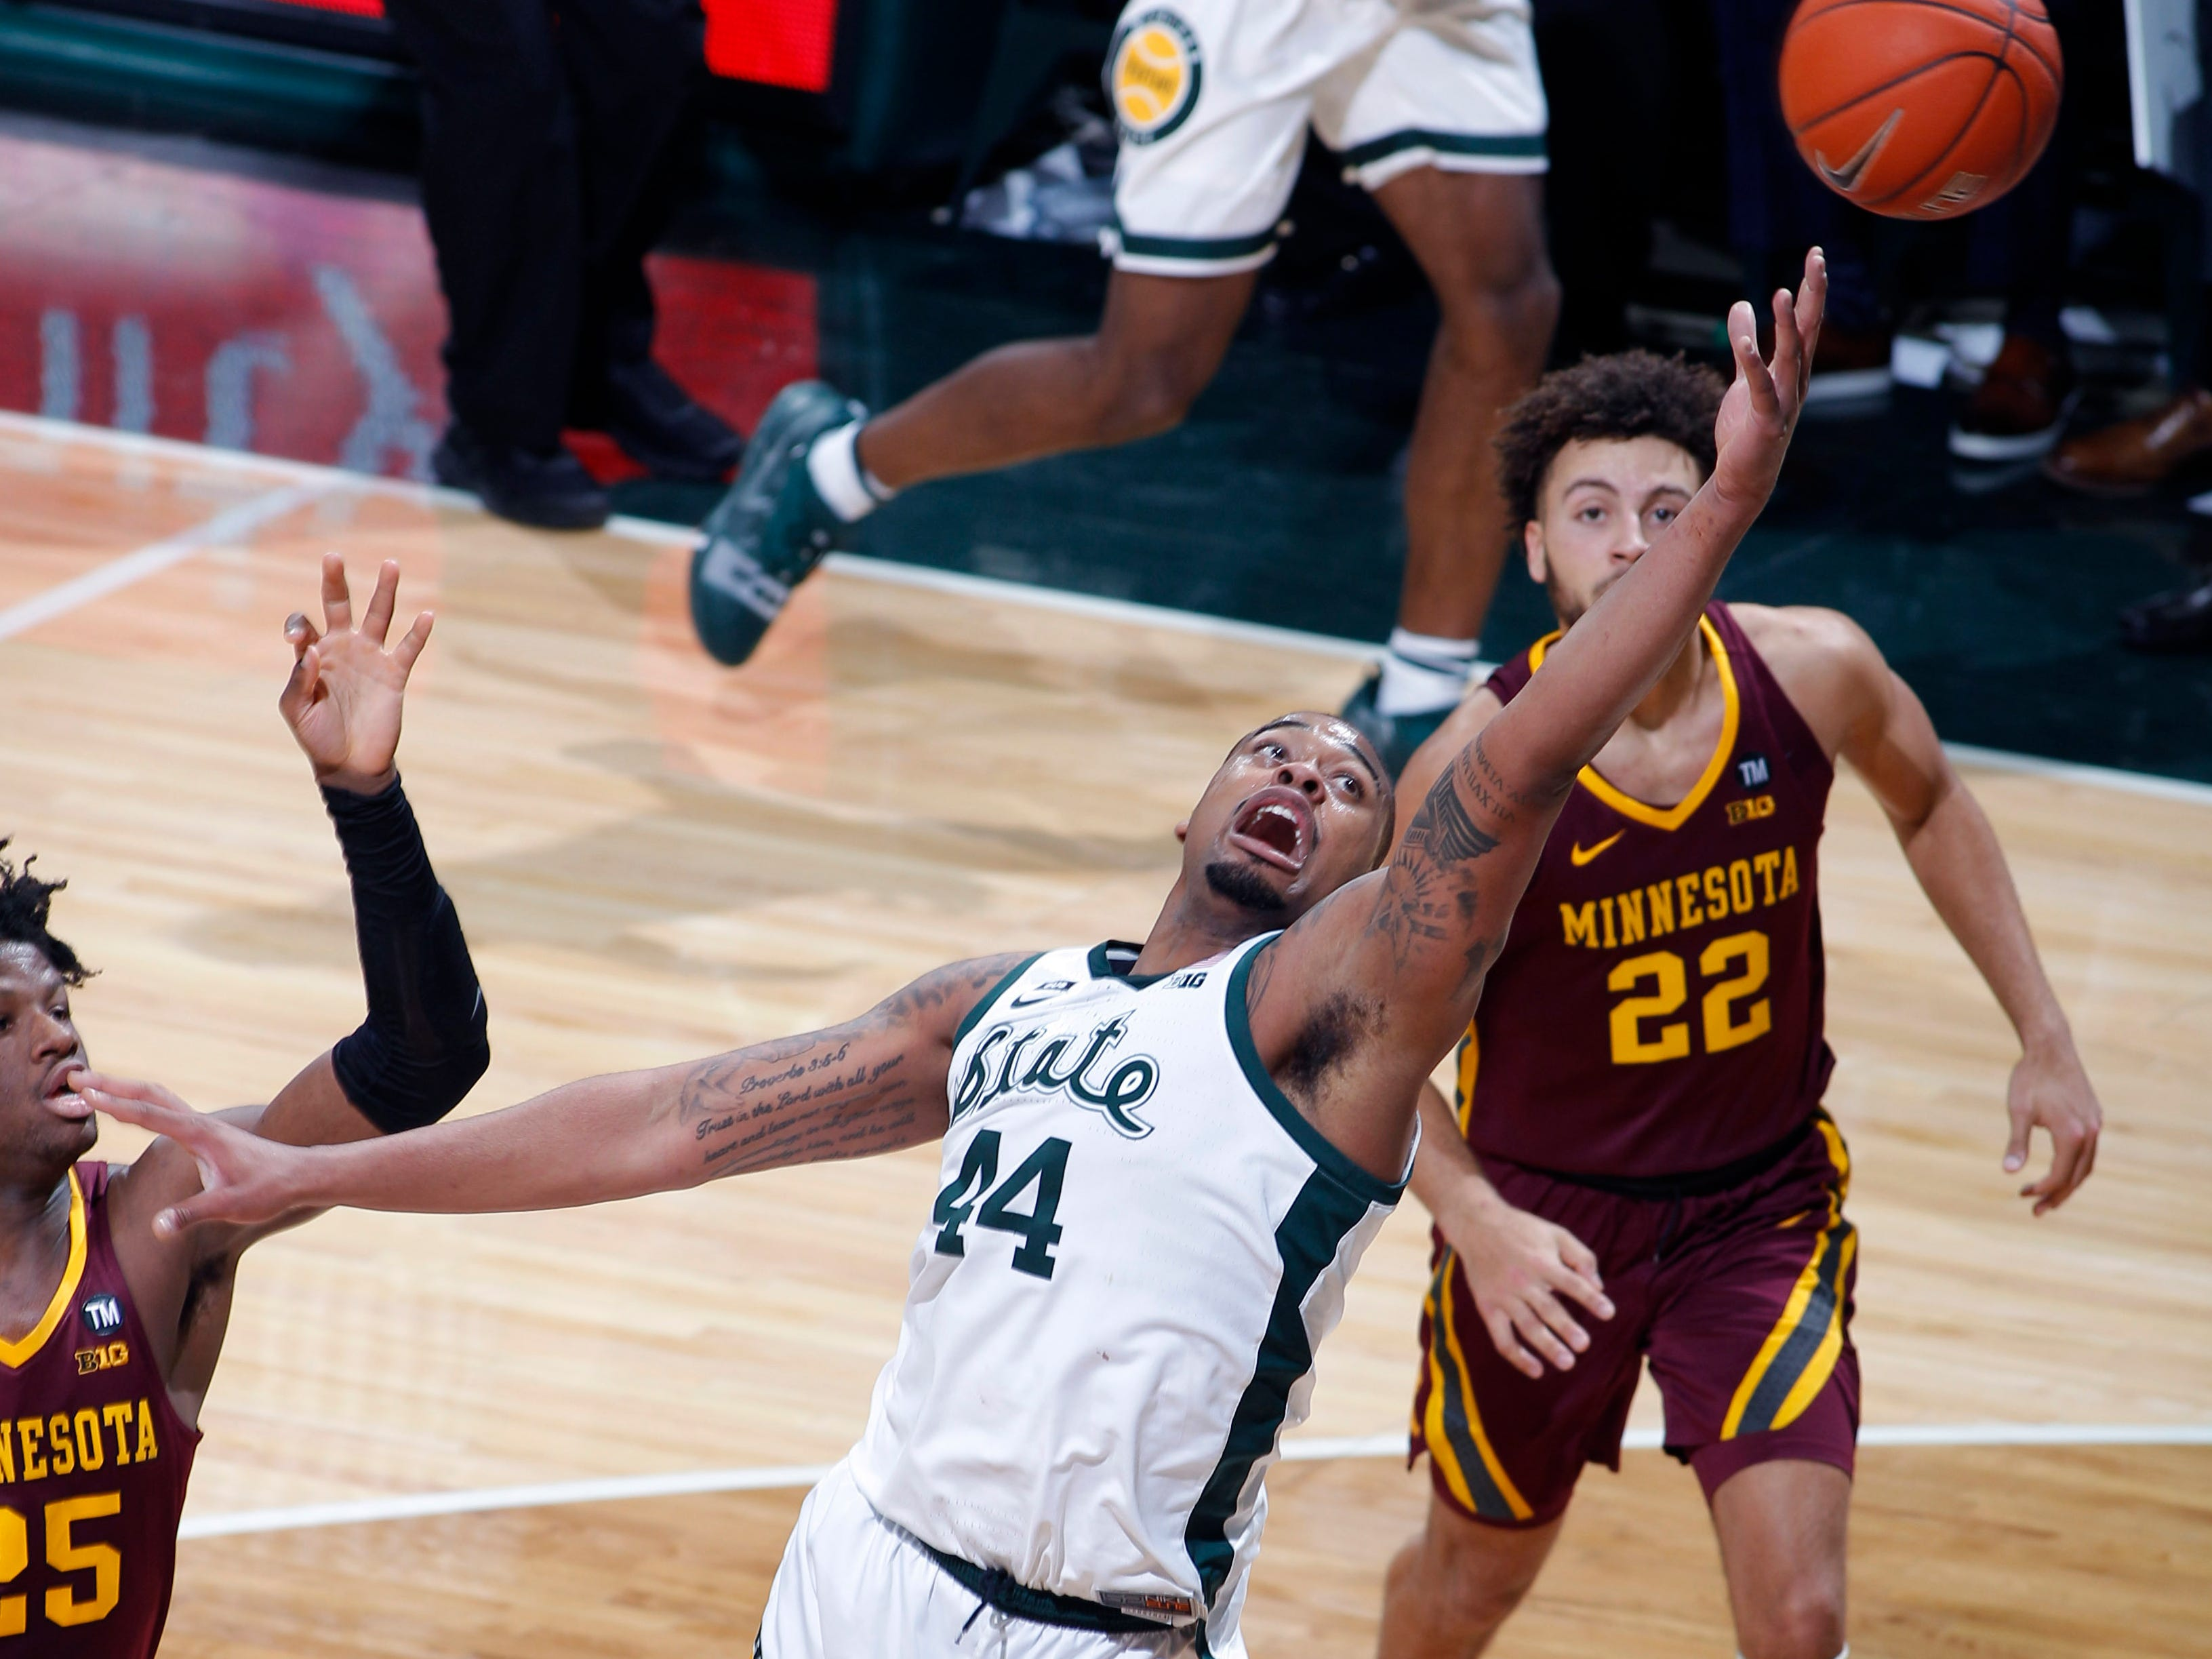 Michigan State's Nick Ward (44) reaches for the ball against Minnesota's Daniel Oturu, left, and Gabe Kalscheur (22) during the first half.